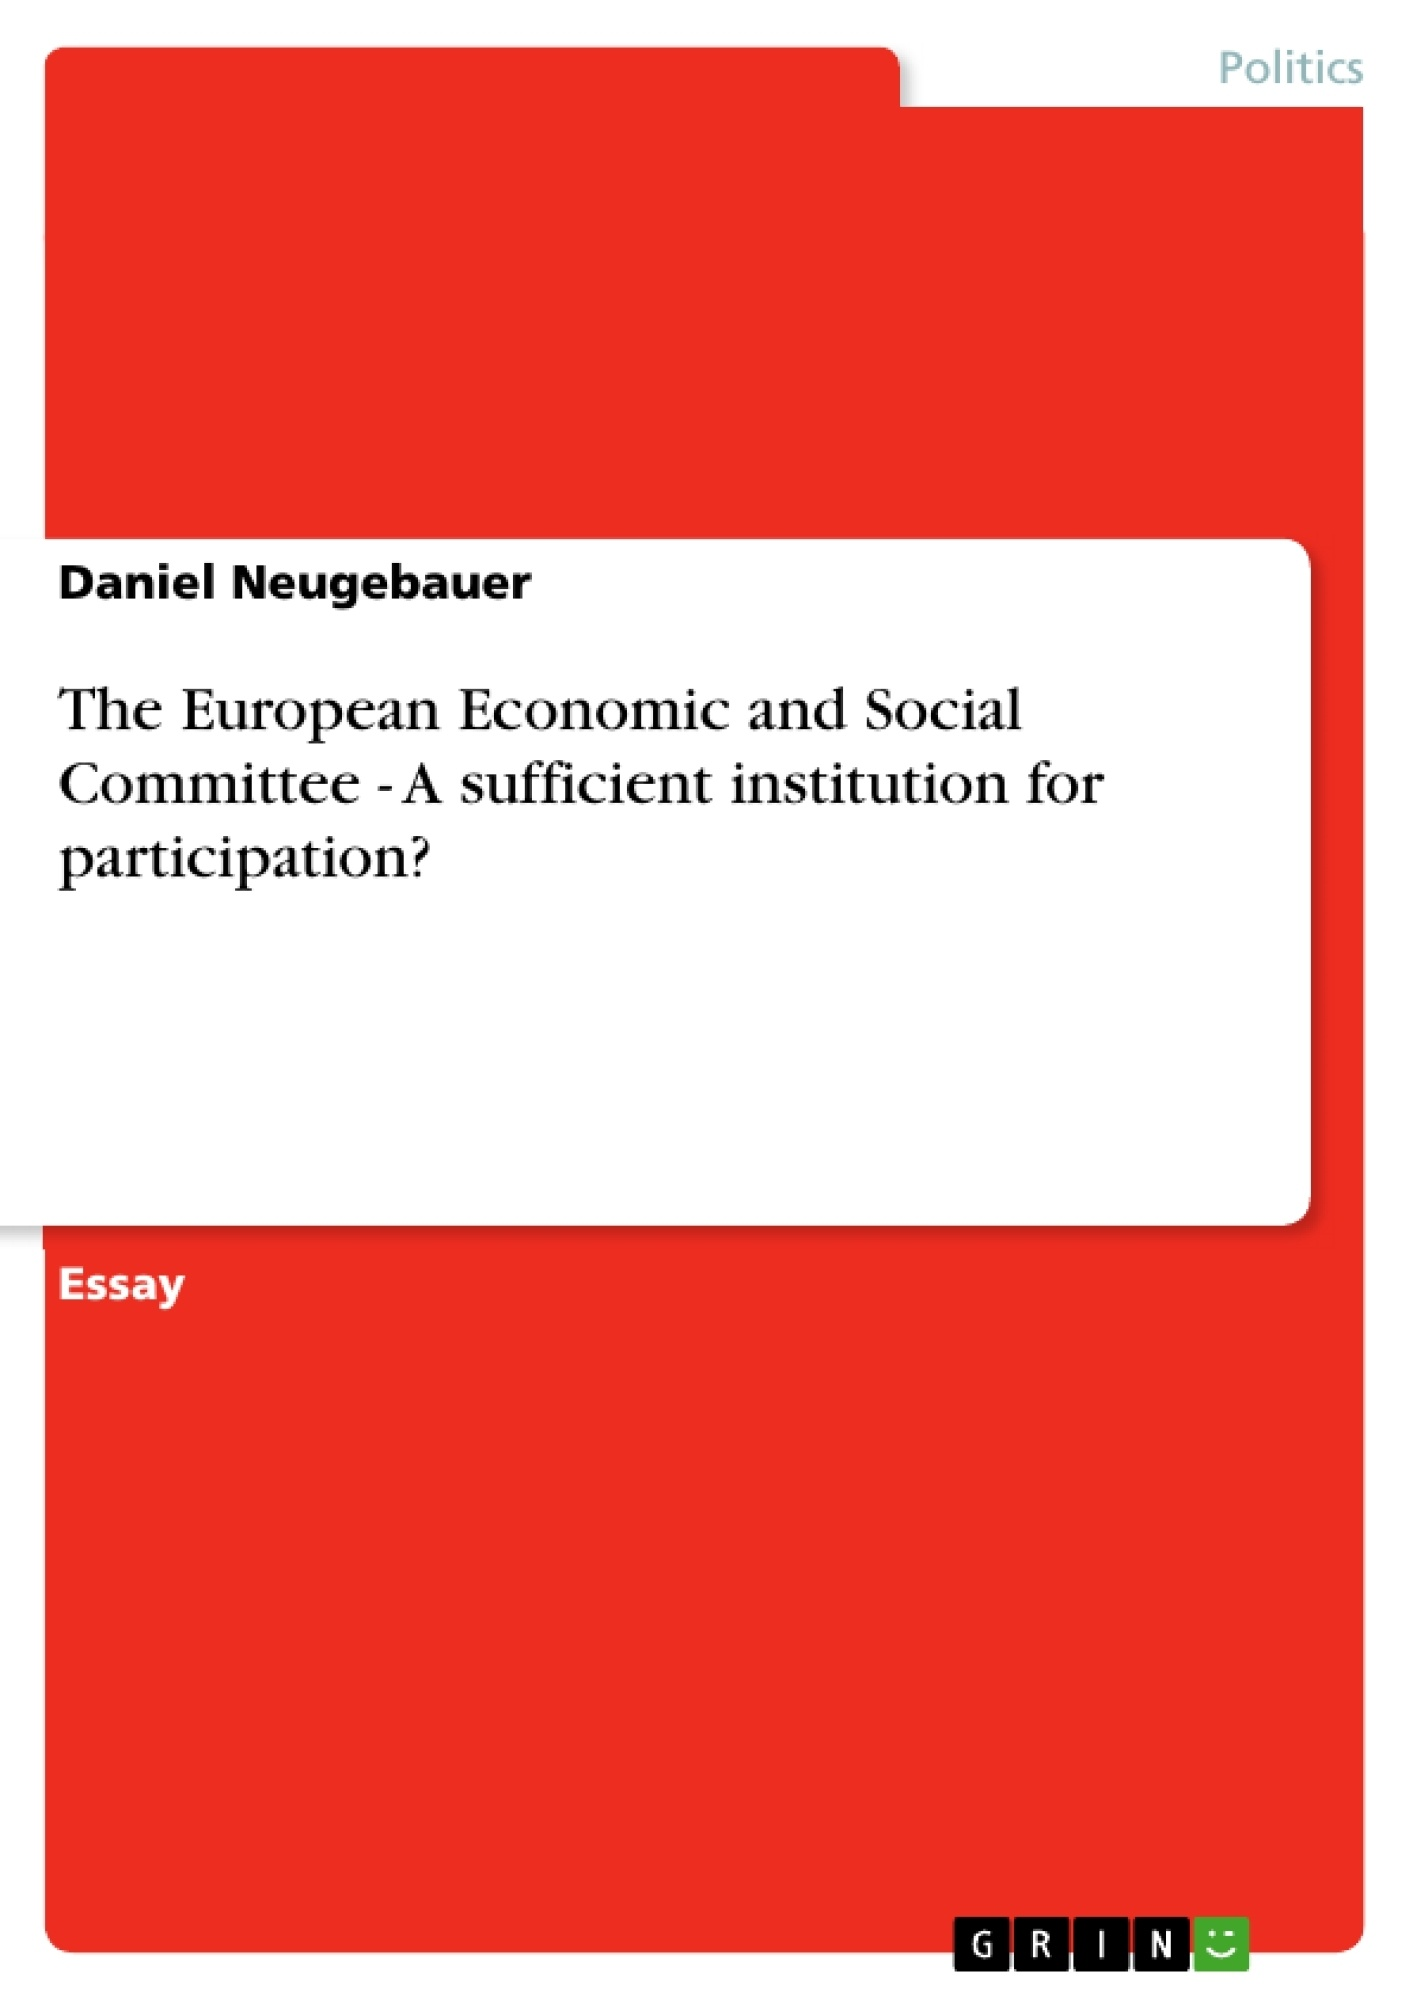 Title: The European Economic and Social Committee - A sufficient institution for participation?